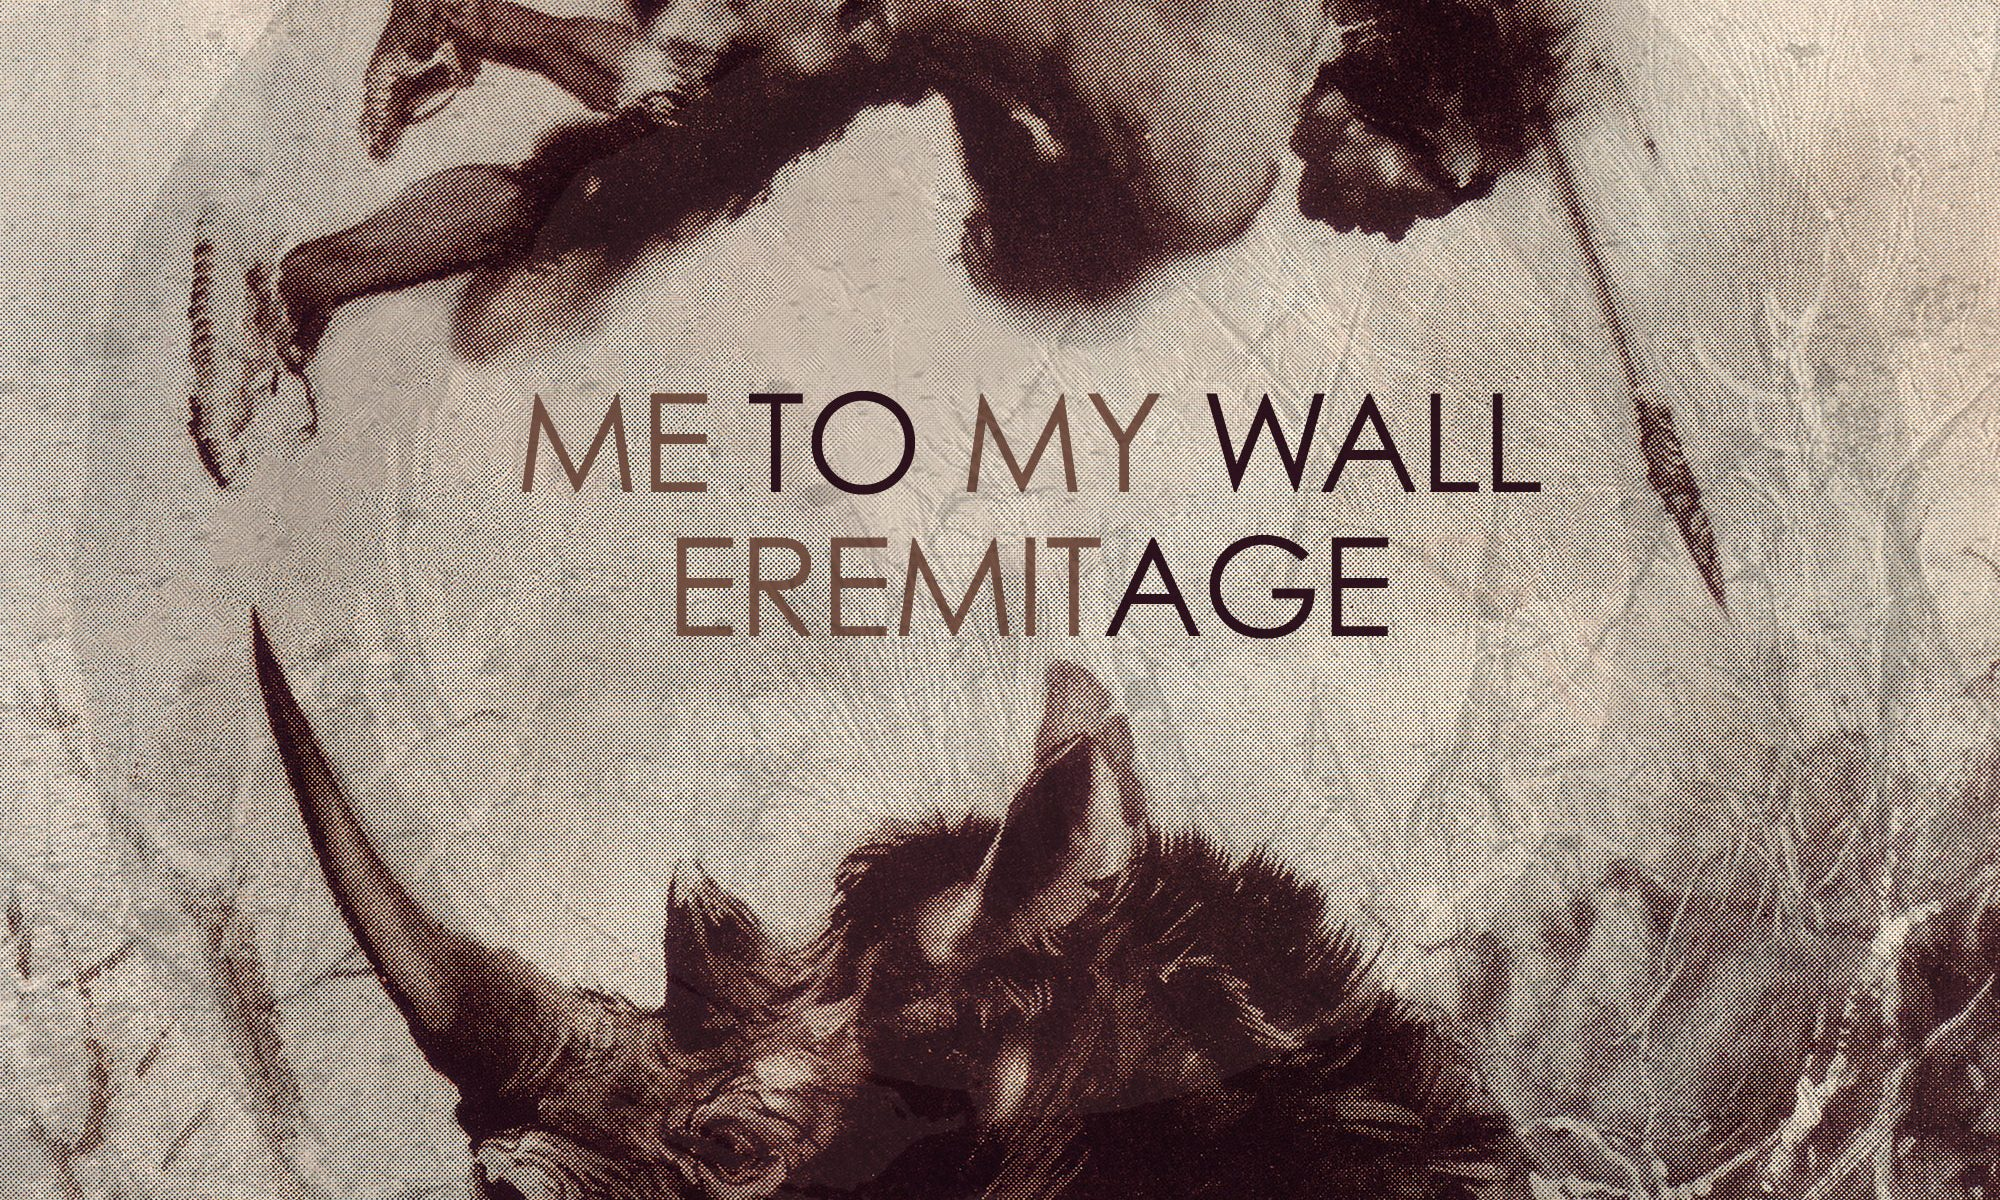 ME TO MY WALL